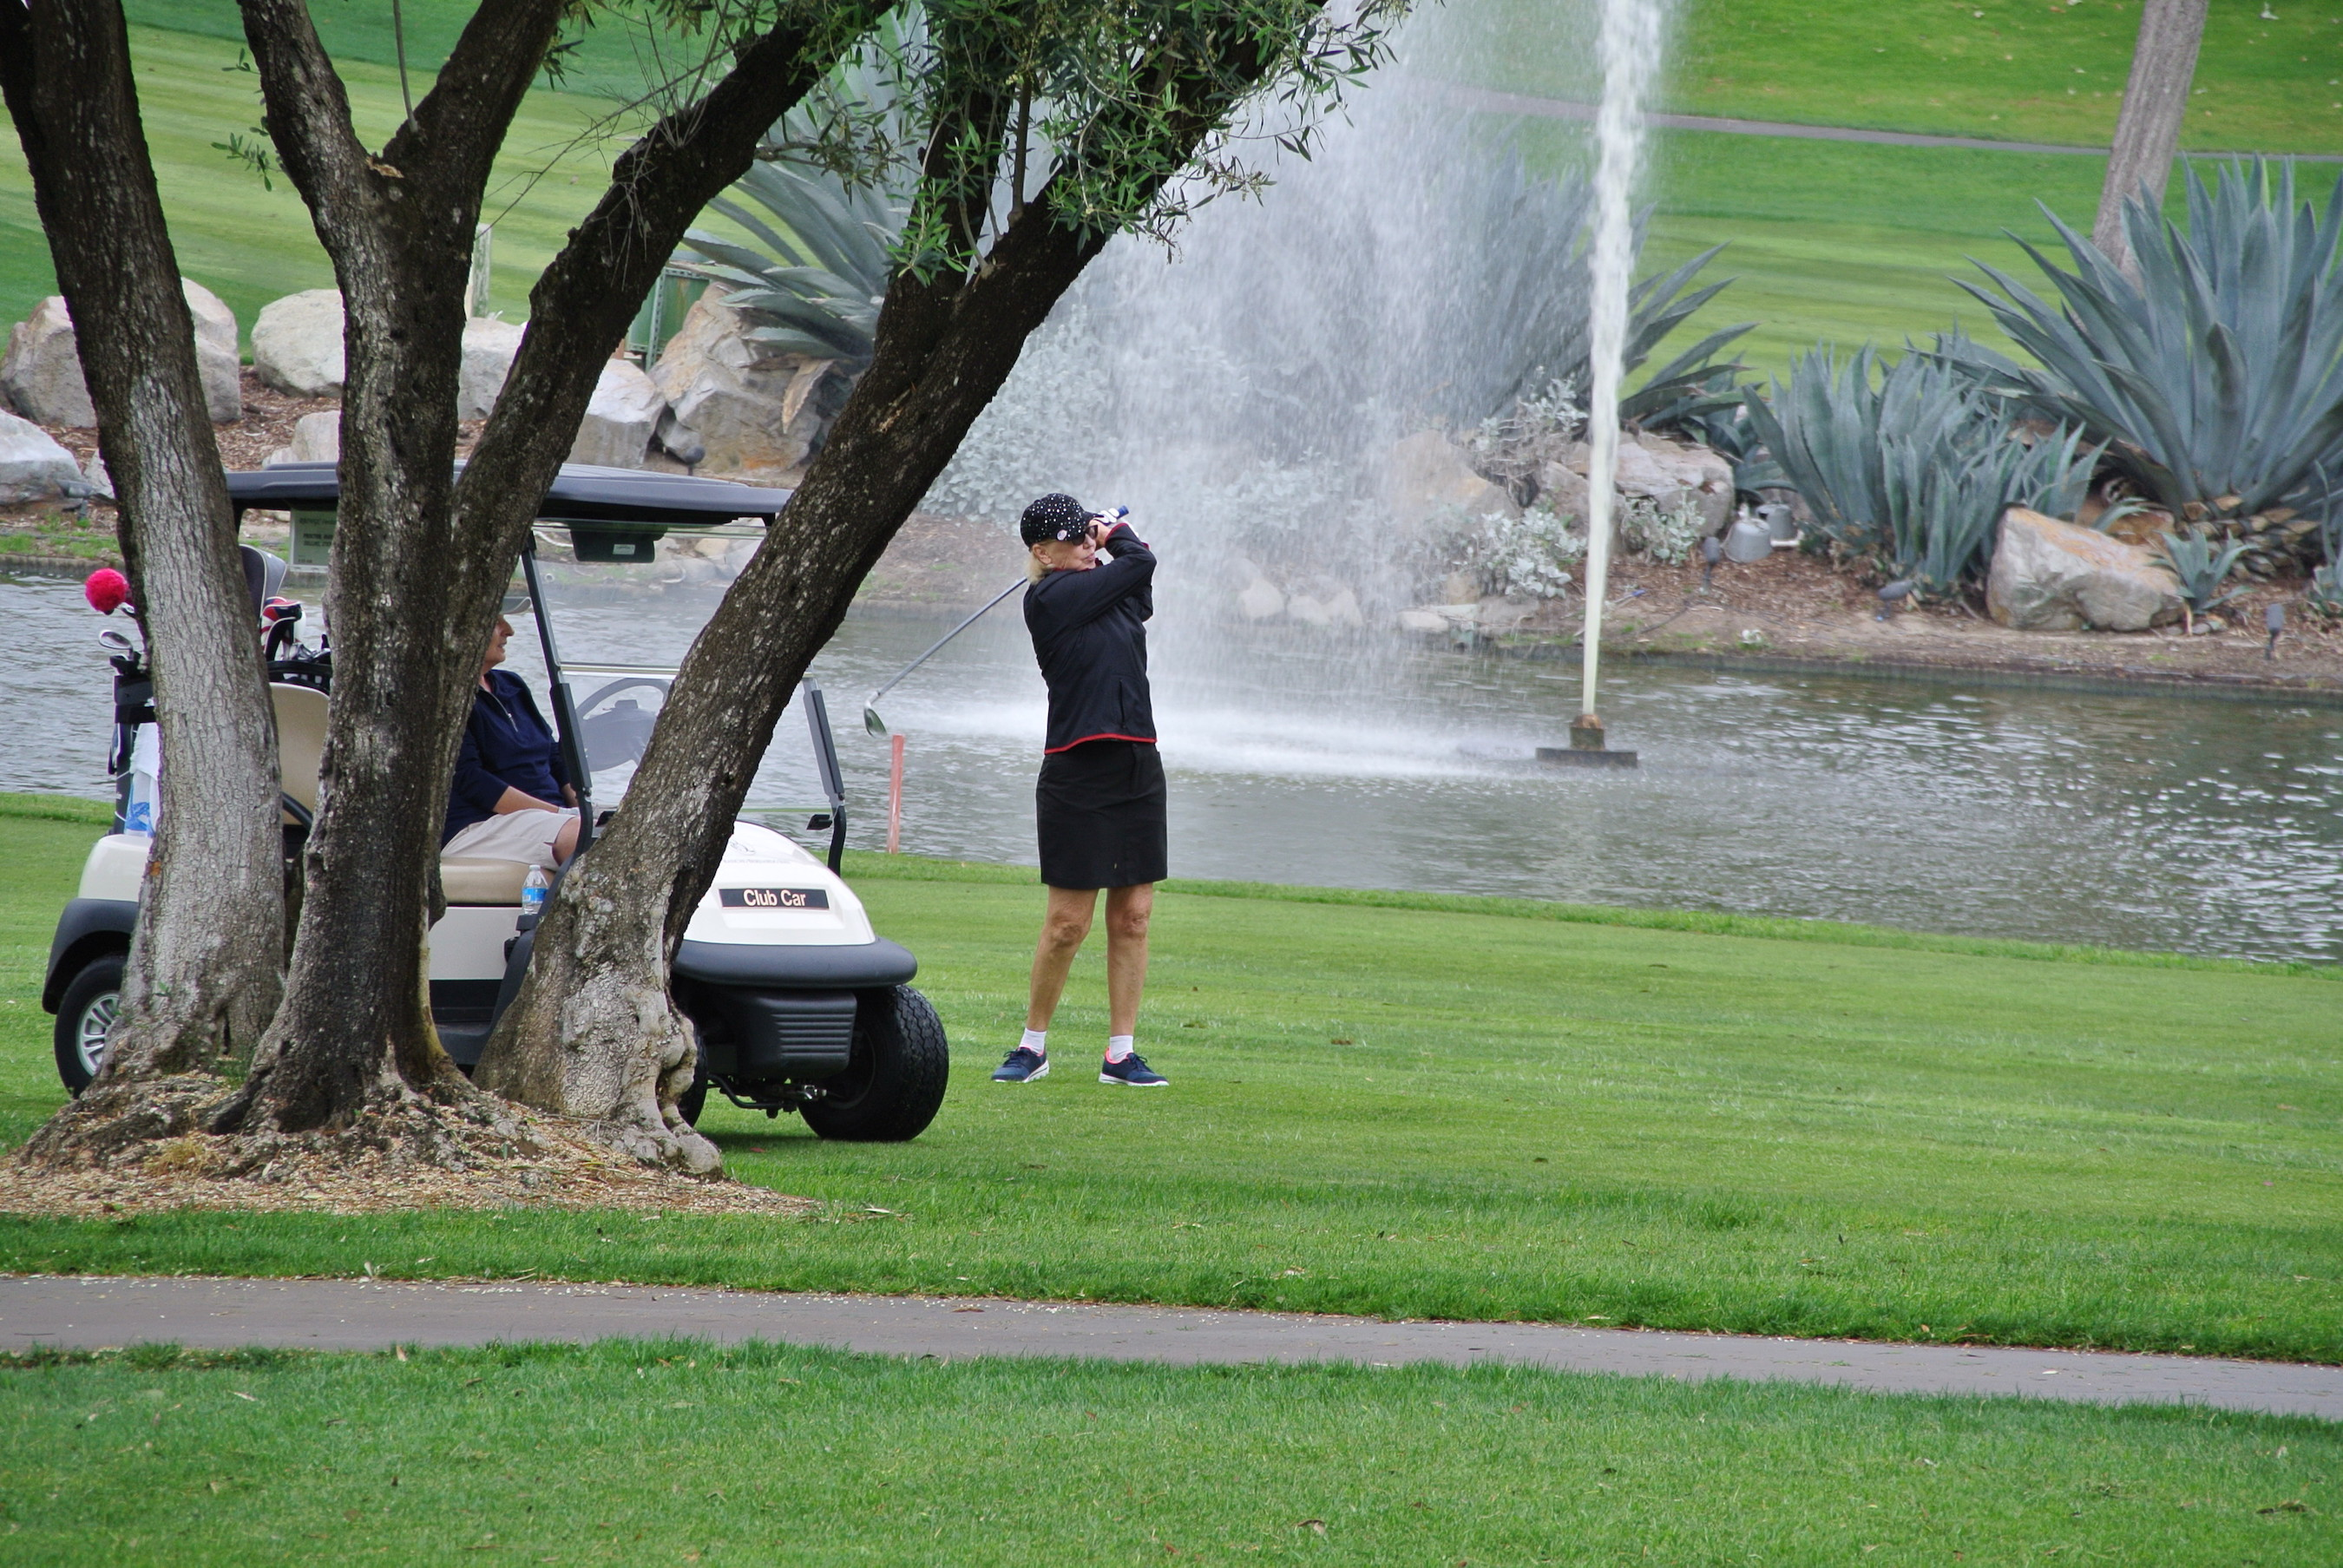 Player completes her approach shot on No. 18, with water spout in background